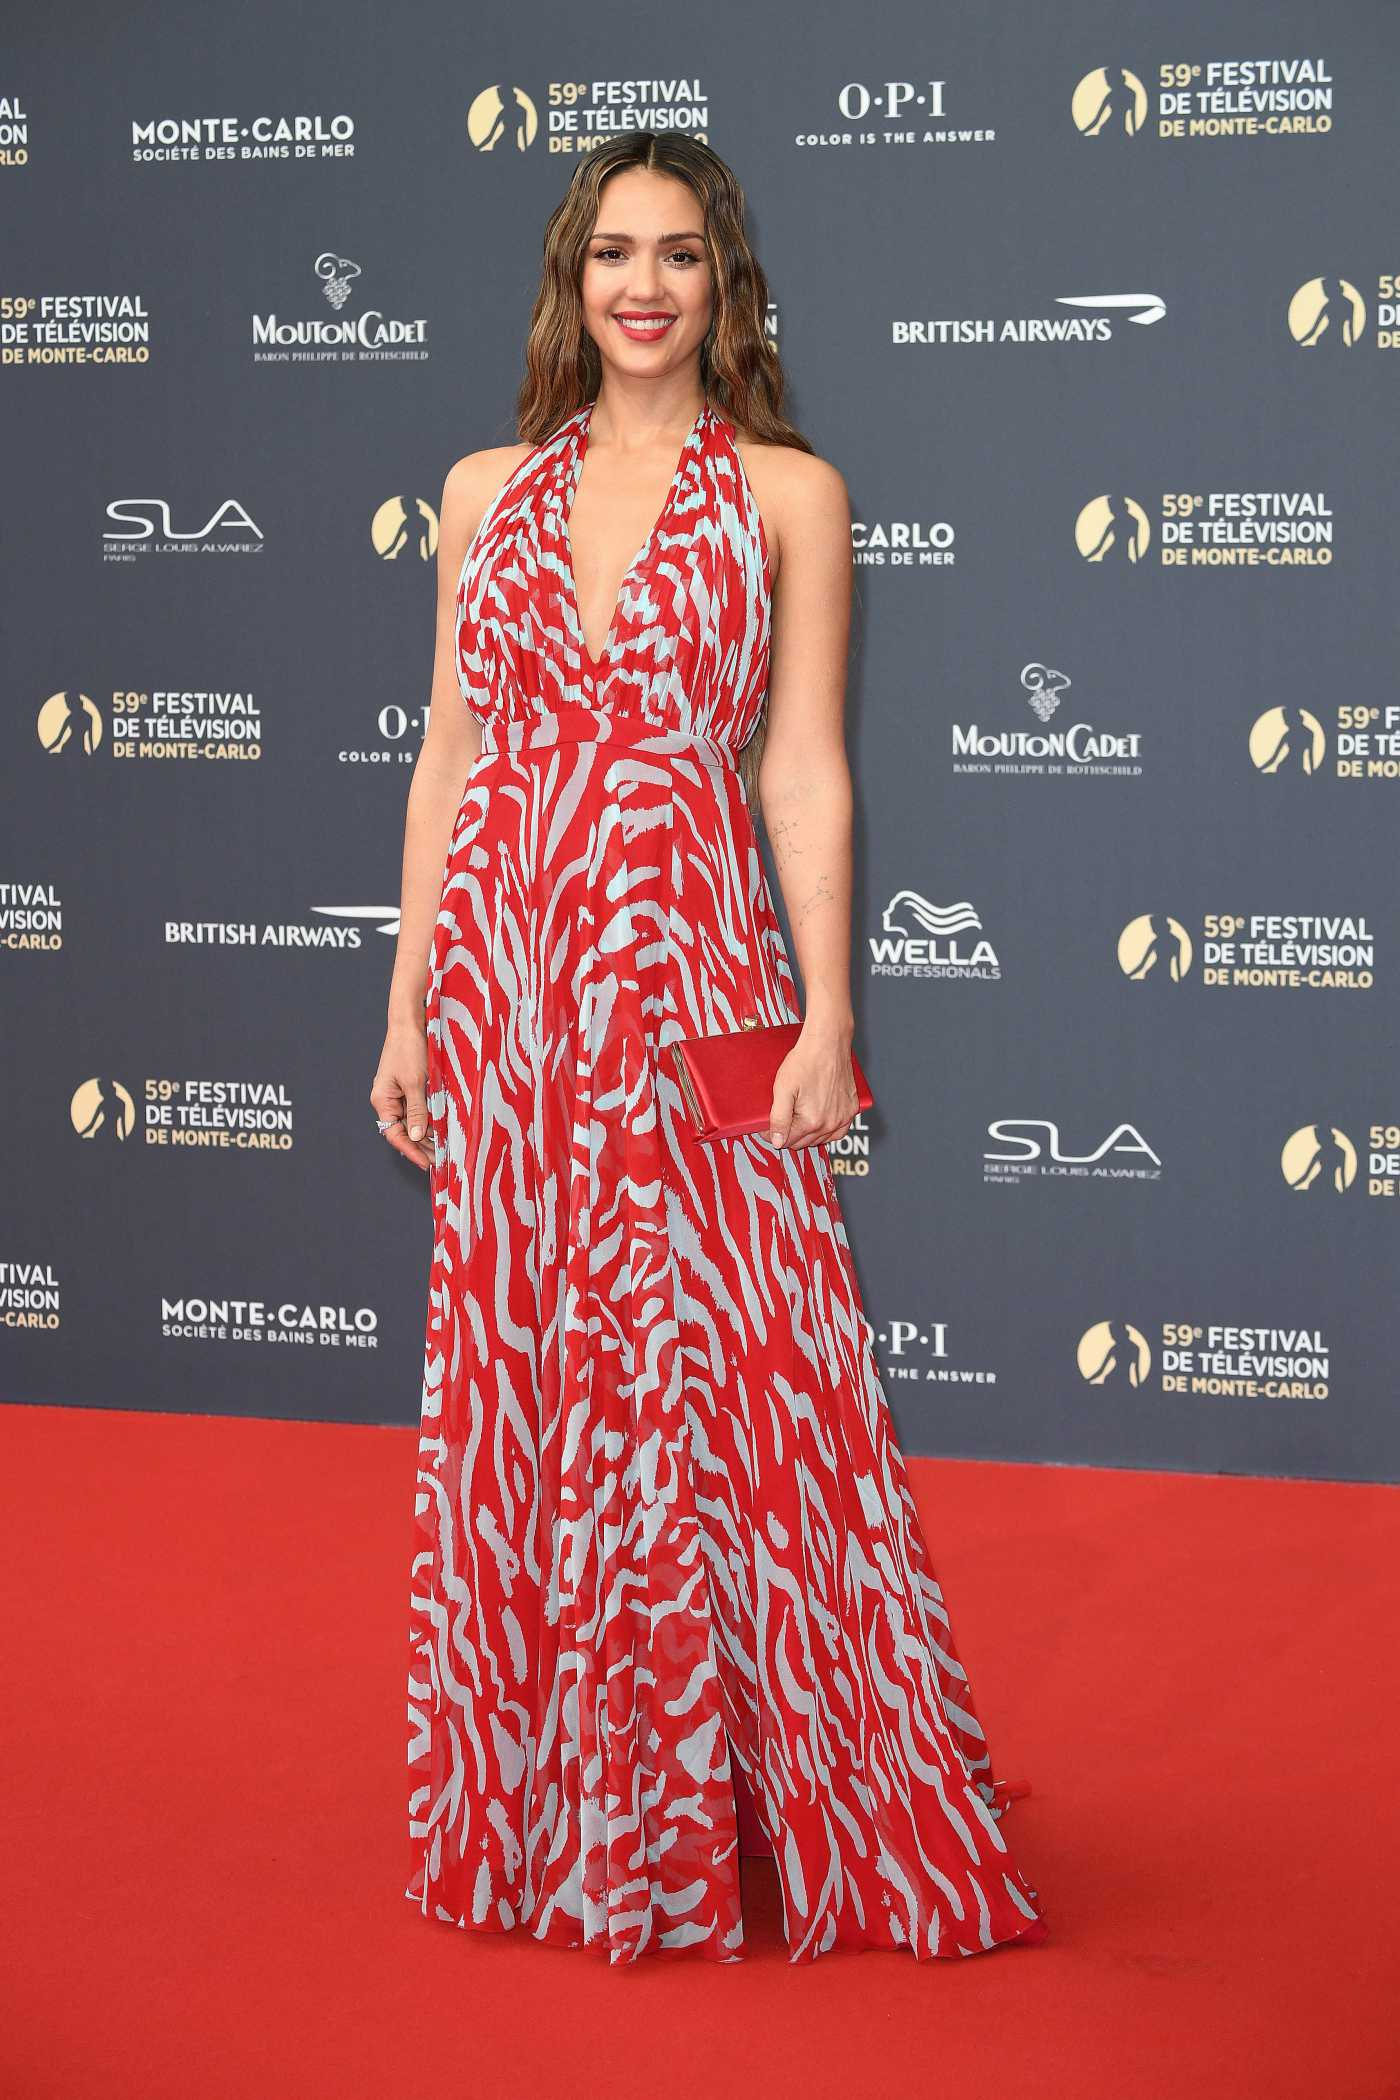 Jessica Alba Attends the 59th Monte Carlo TV Festival Opening Ceremony in Monte Carlo 06/14/2019